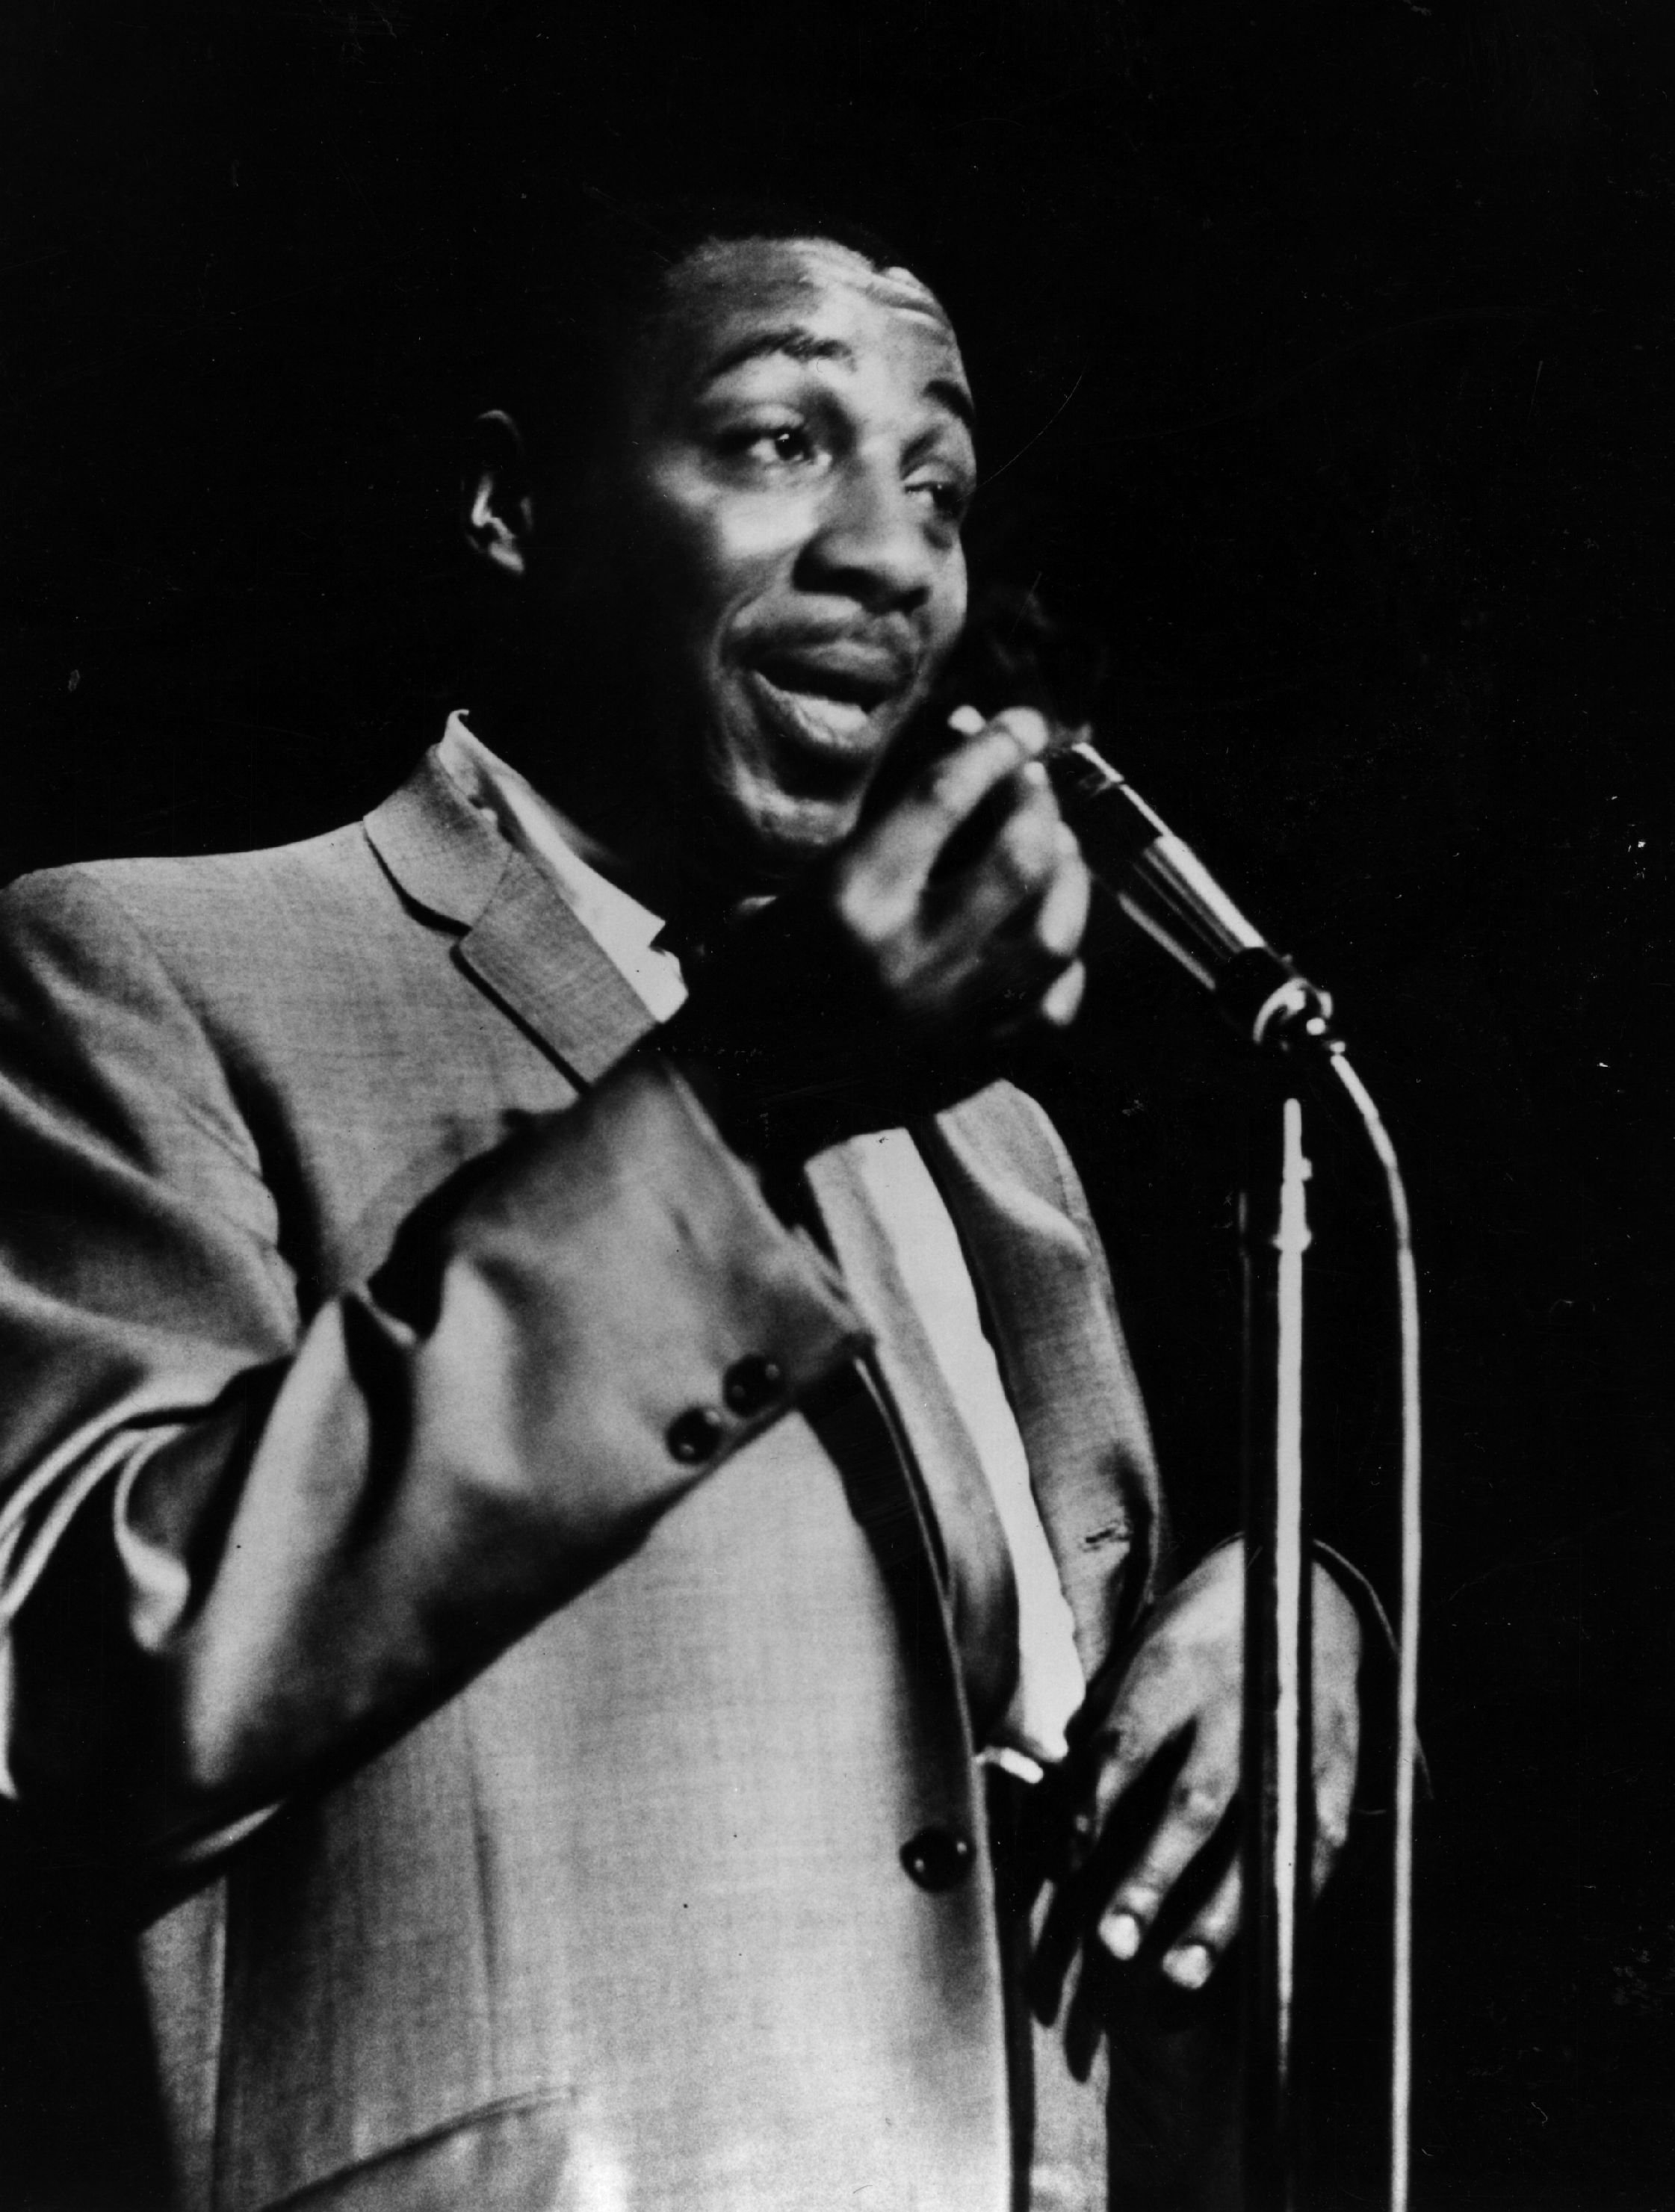 Comedian Dick Gregory at the microphone, 1962.